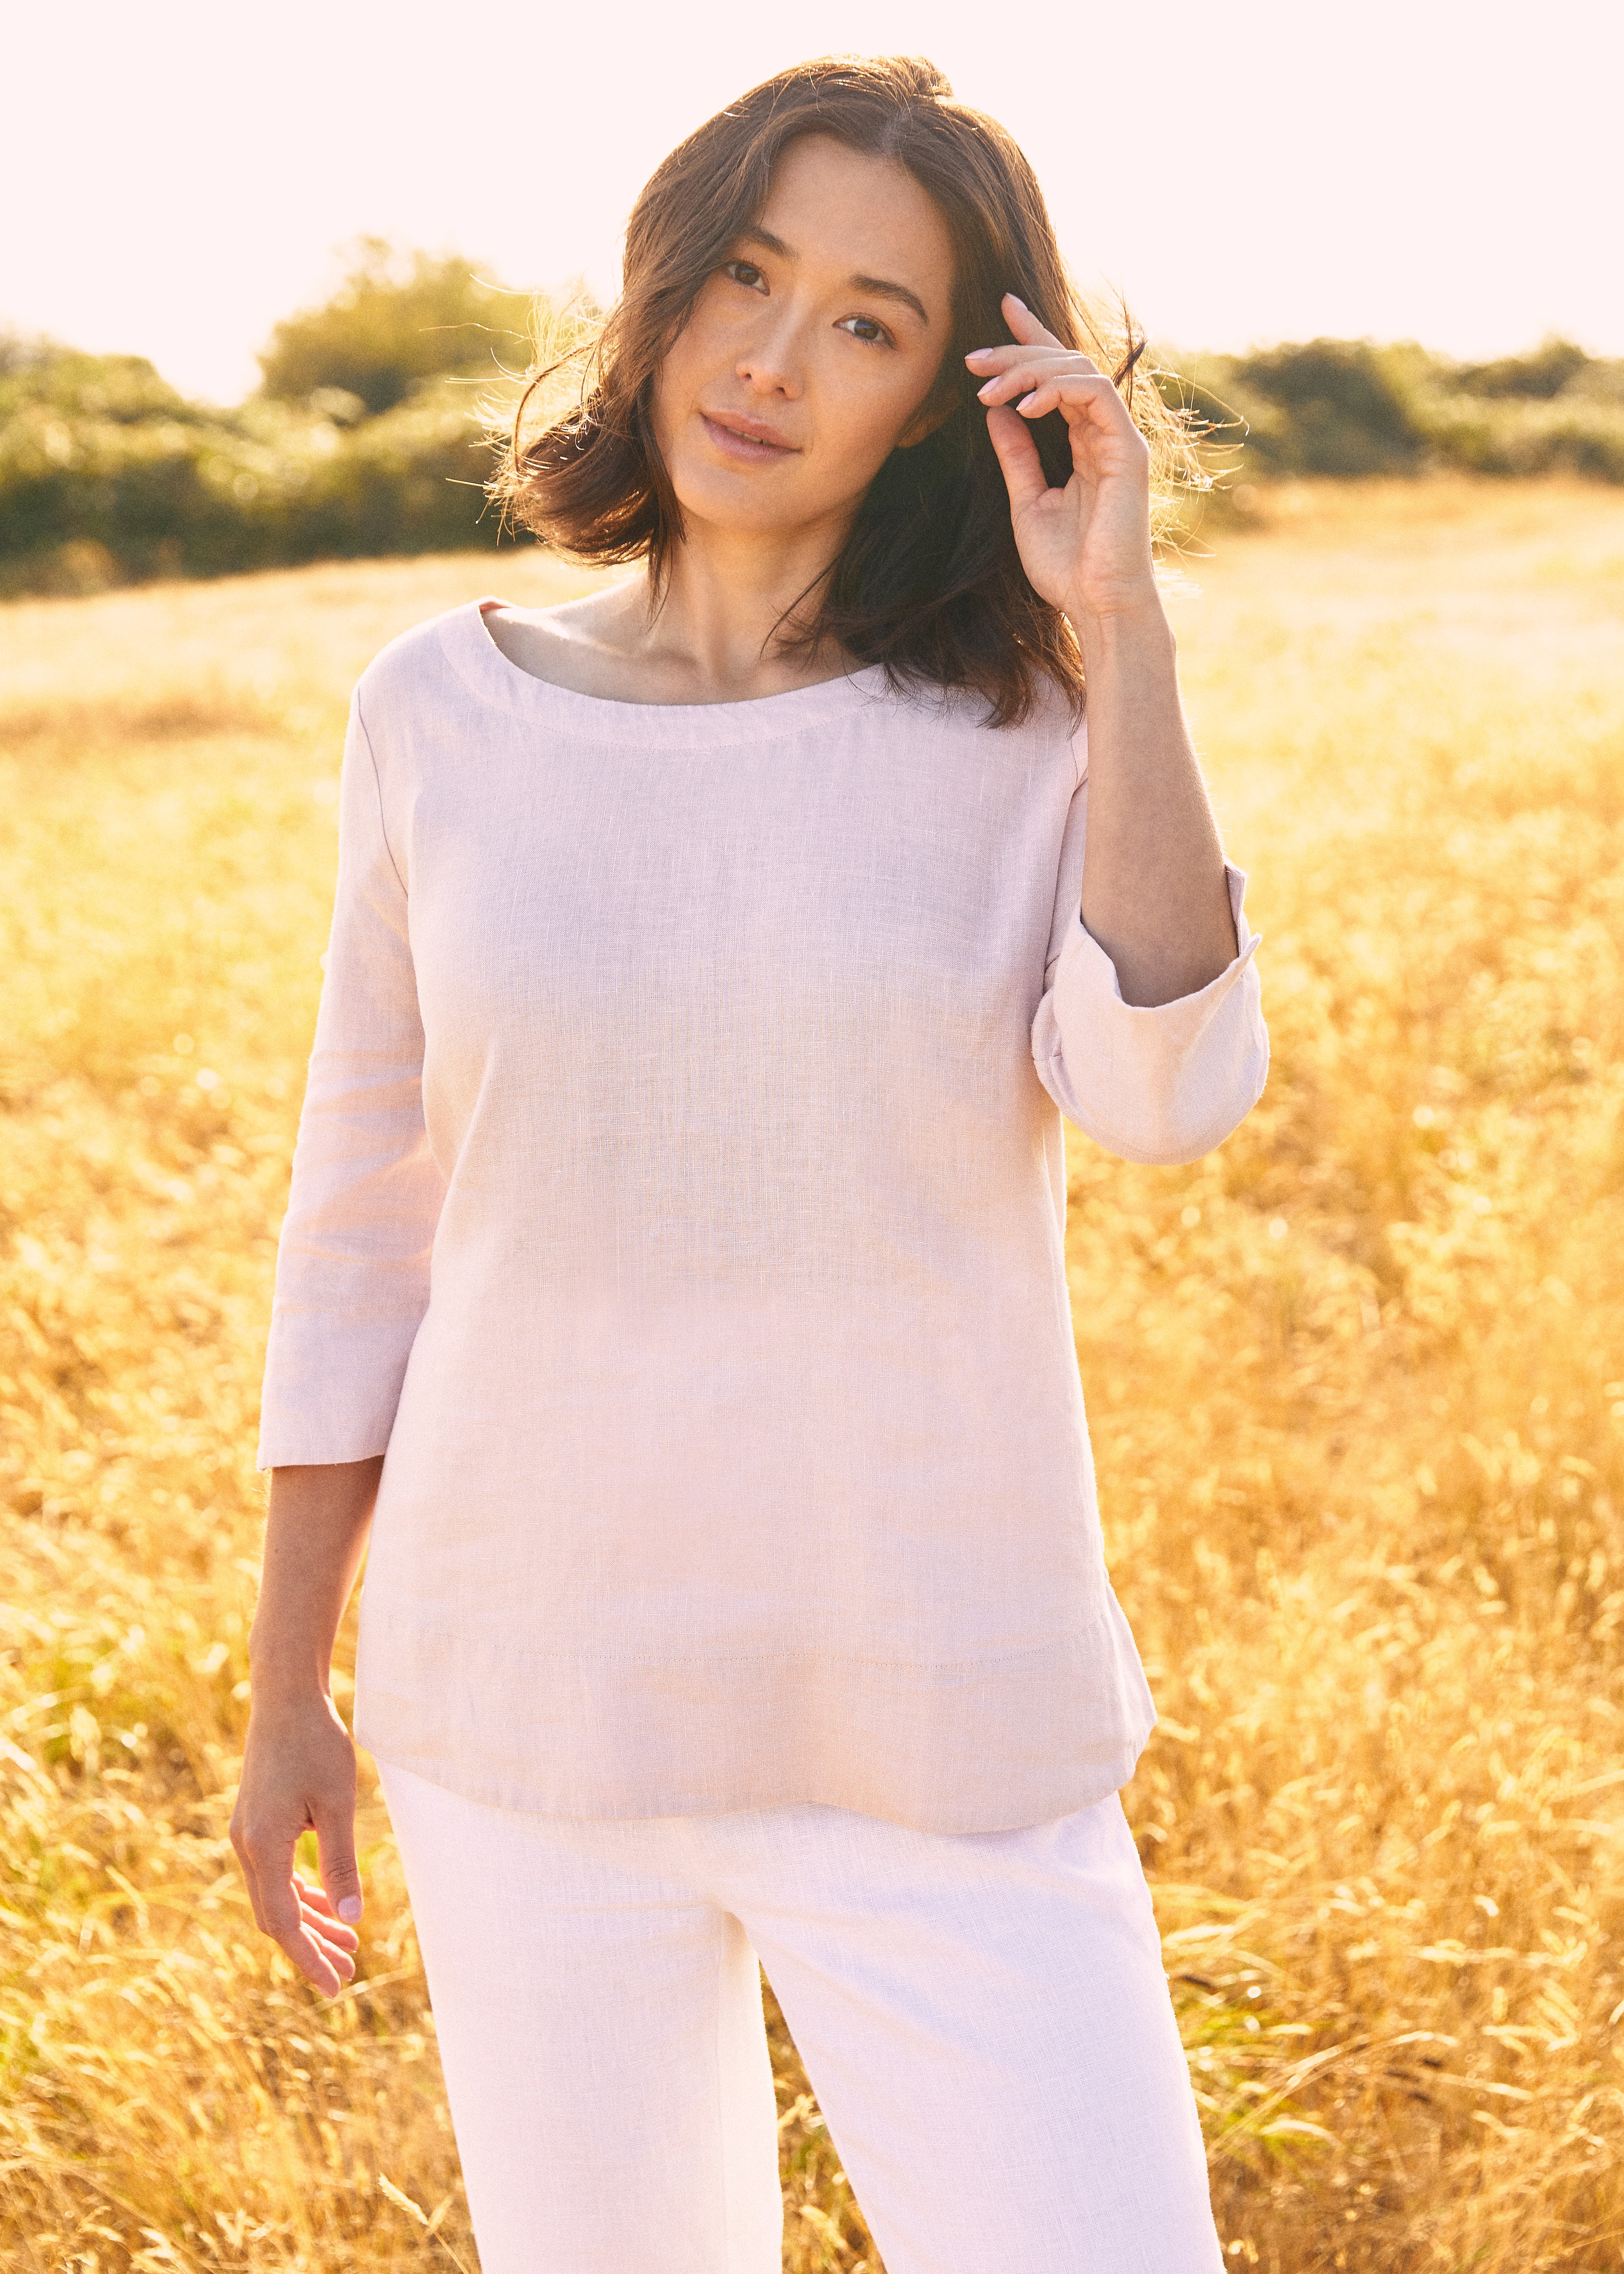 Sympli 100% Linen 3/4 Sleeve Top Style LW2202, 4 Colors Available